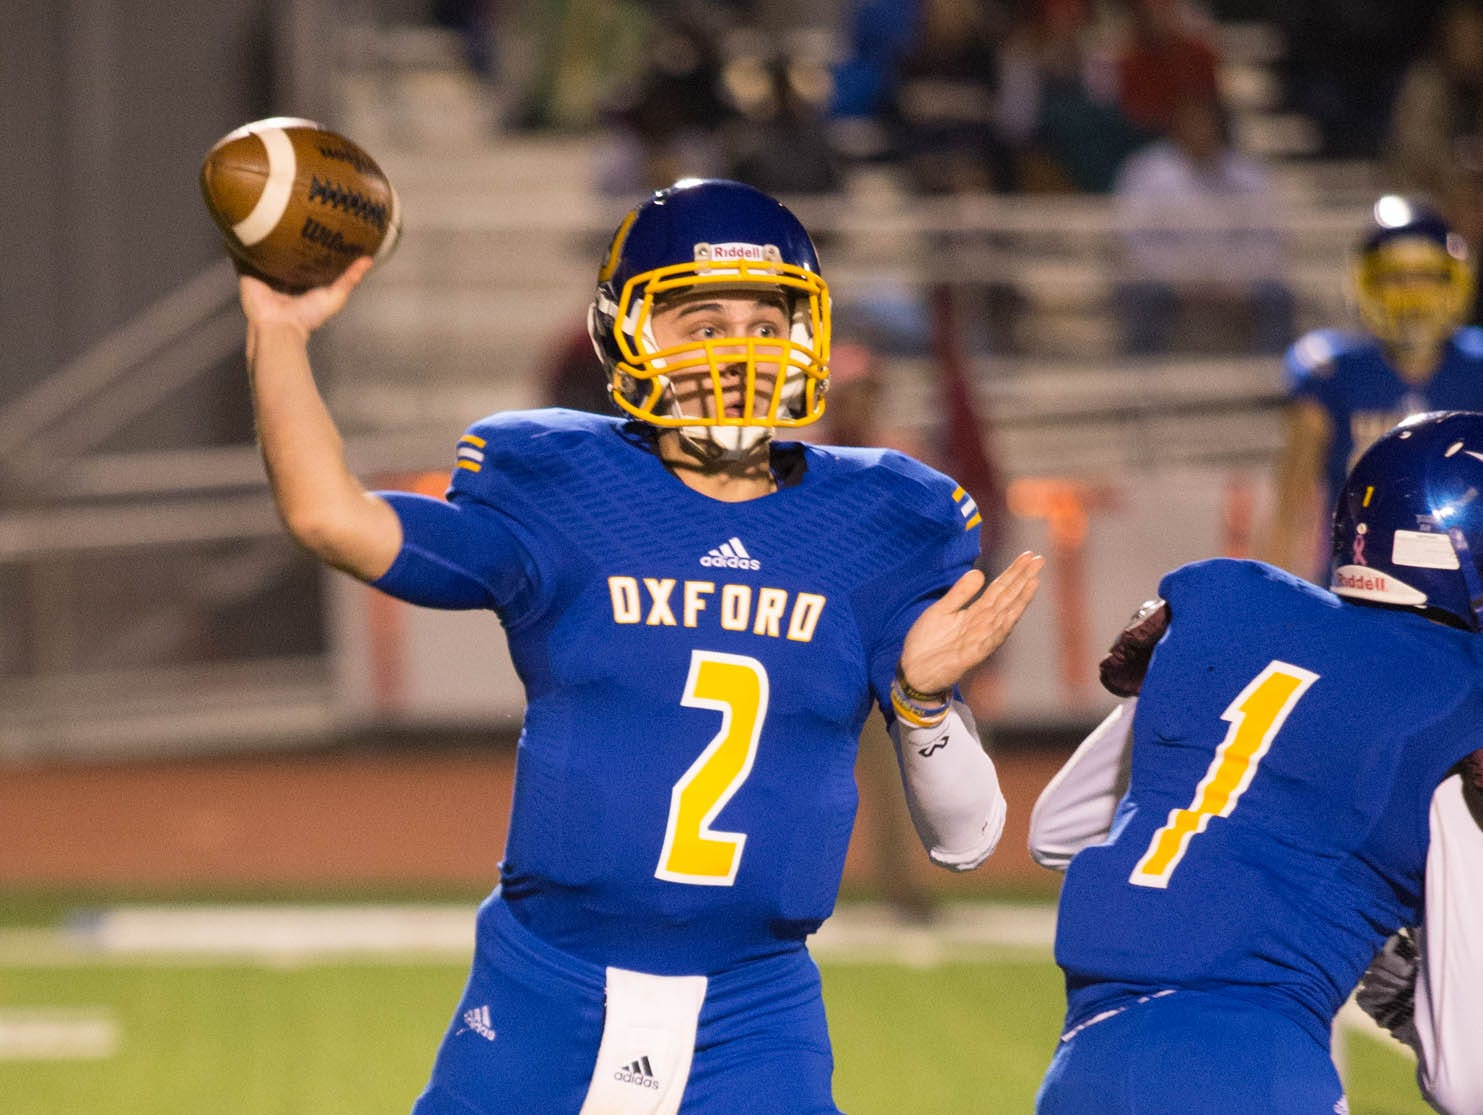 Oxford's Jack Abraham is Mississippi's Gatorade player of the year.